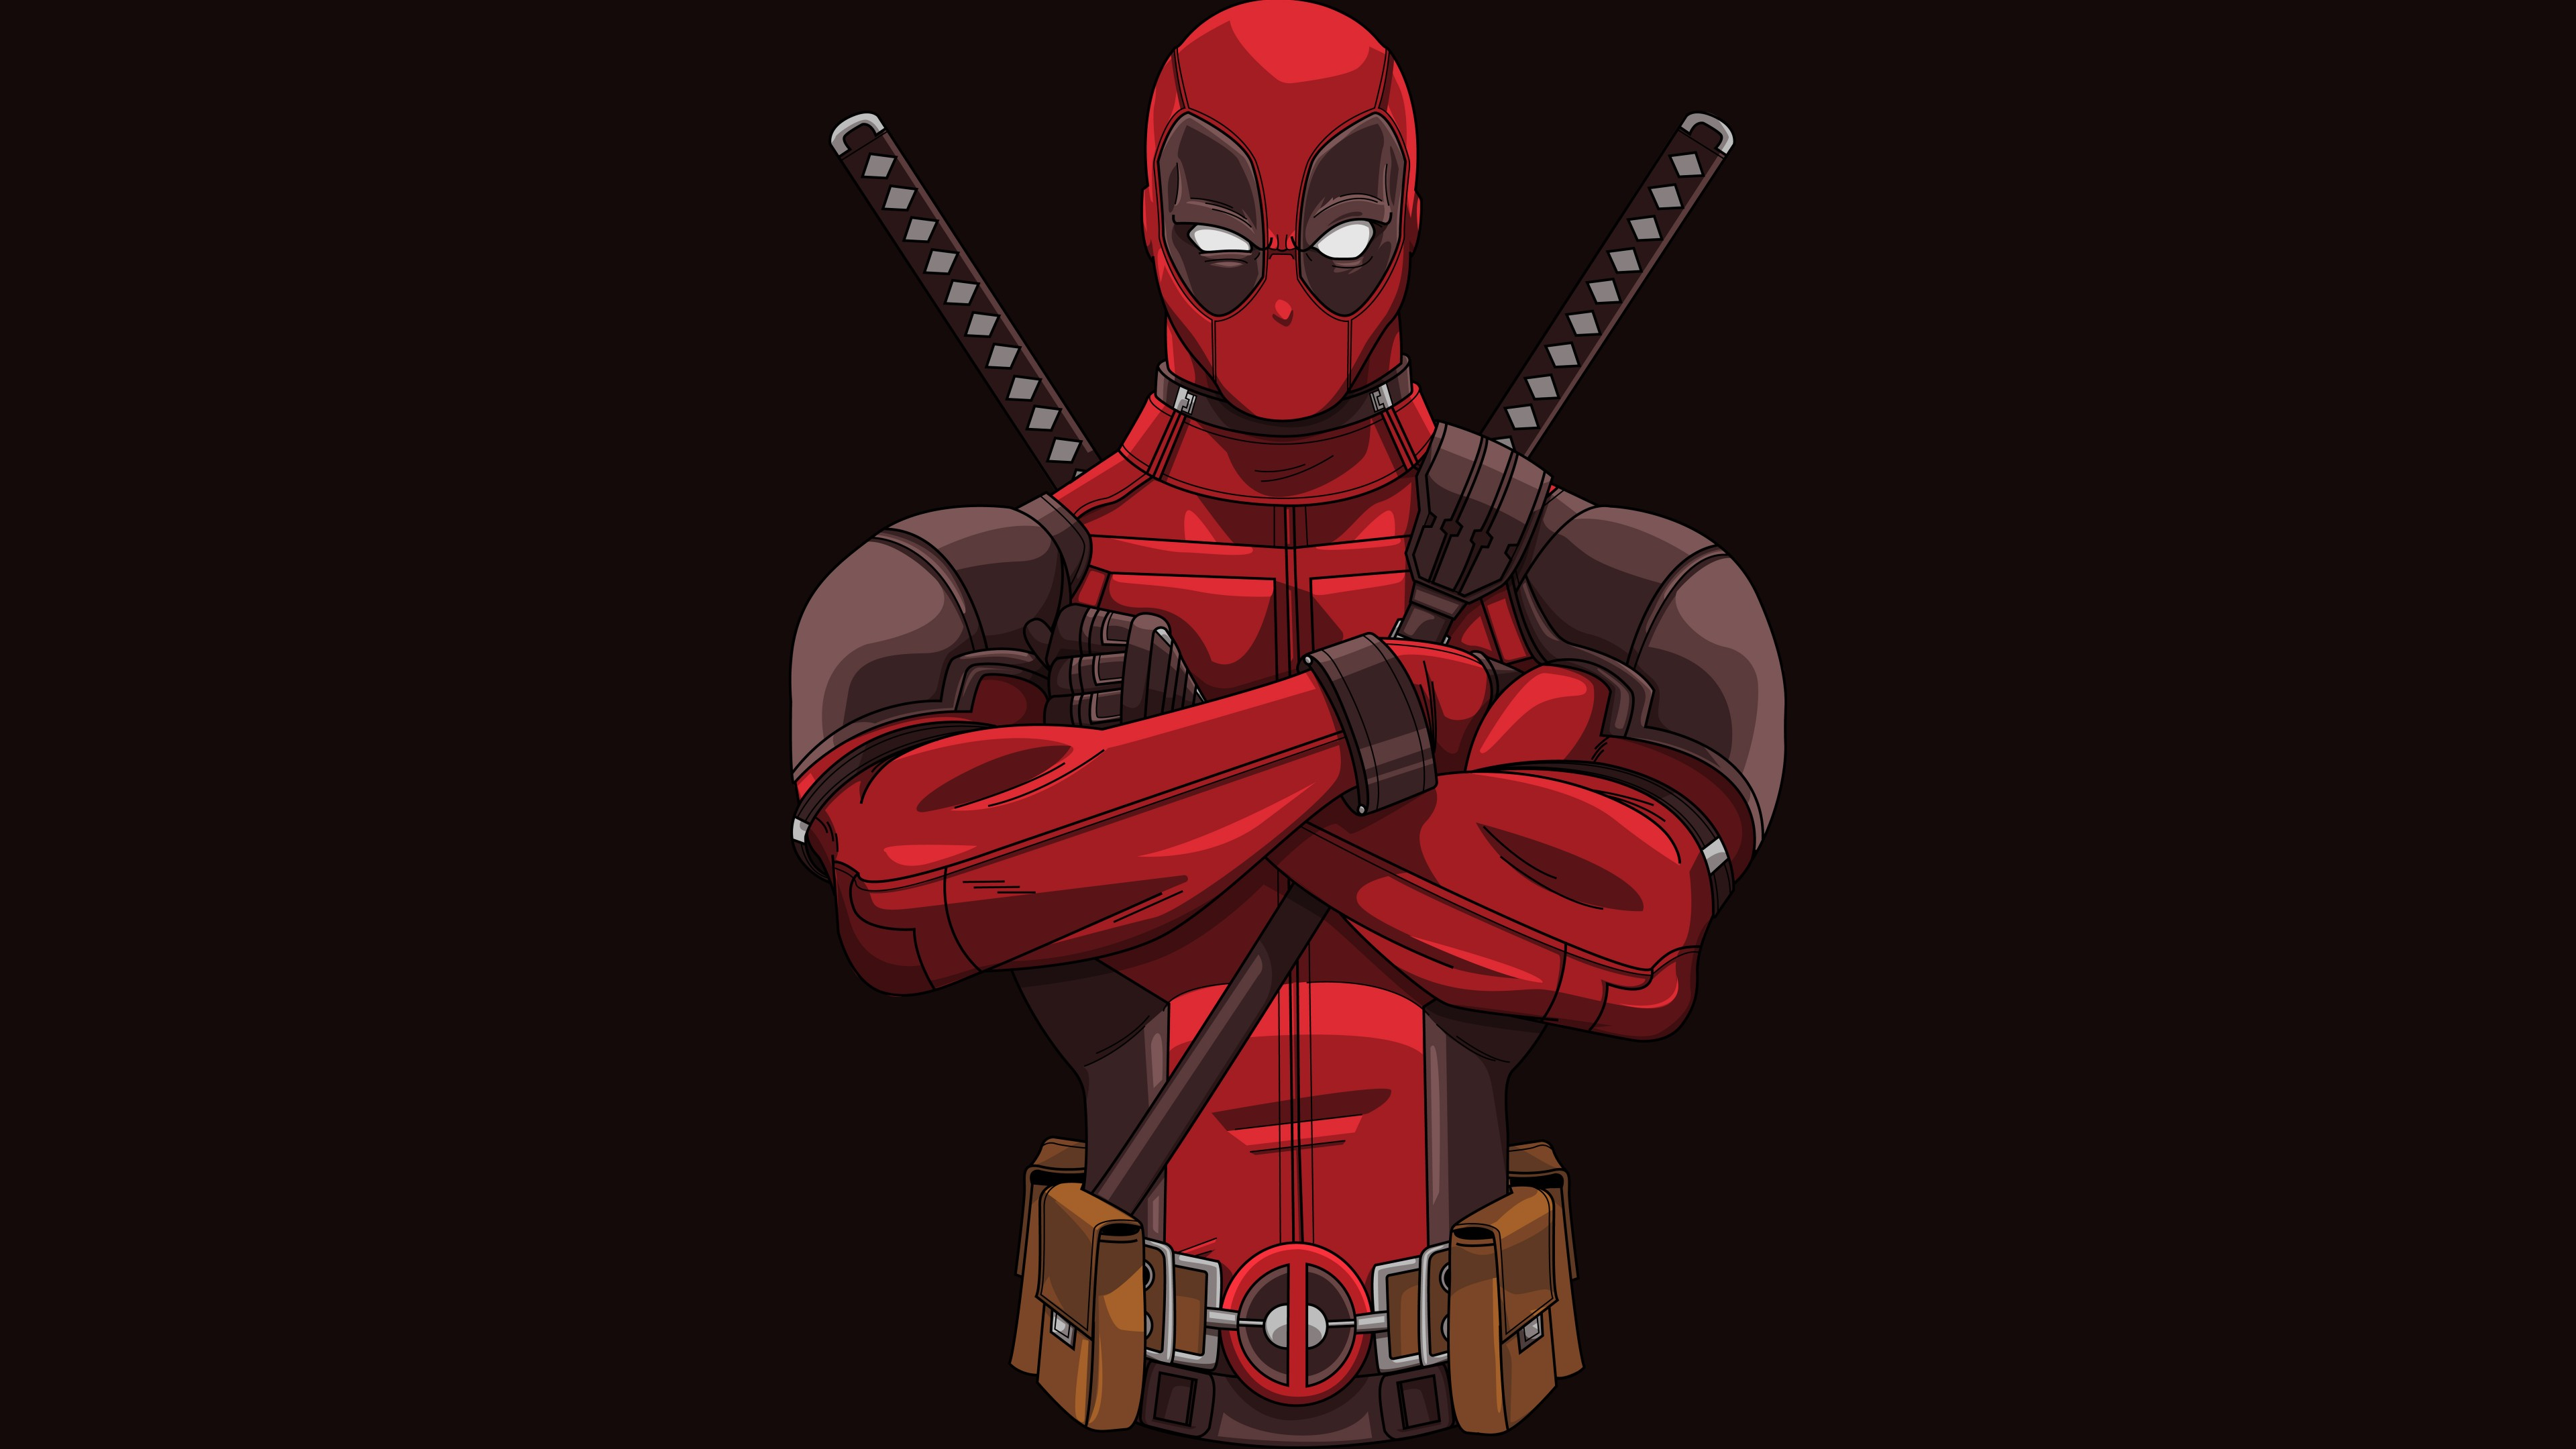 Deadpool Minimal Artwork Desktop Background-3840x2160